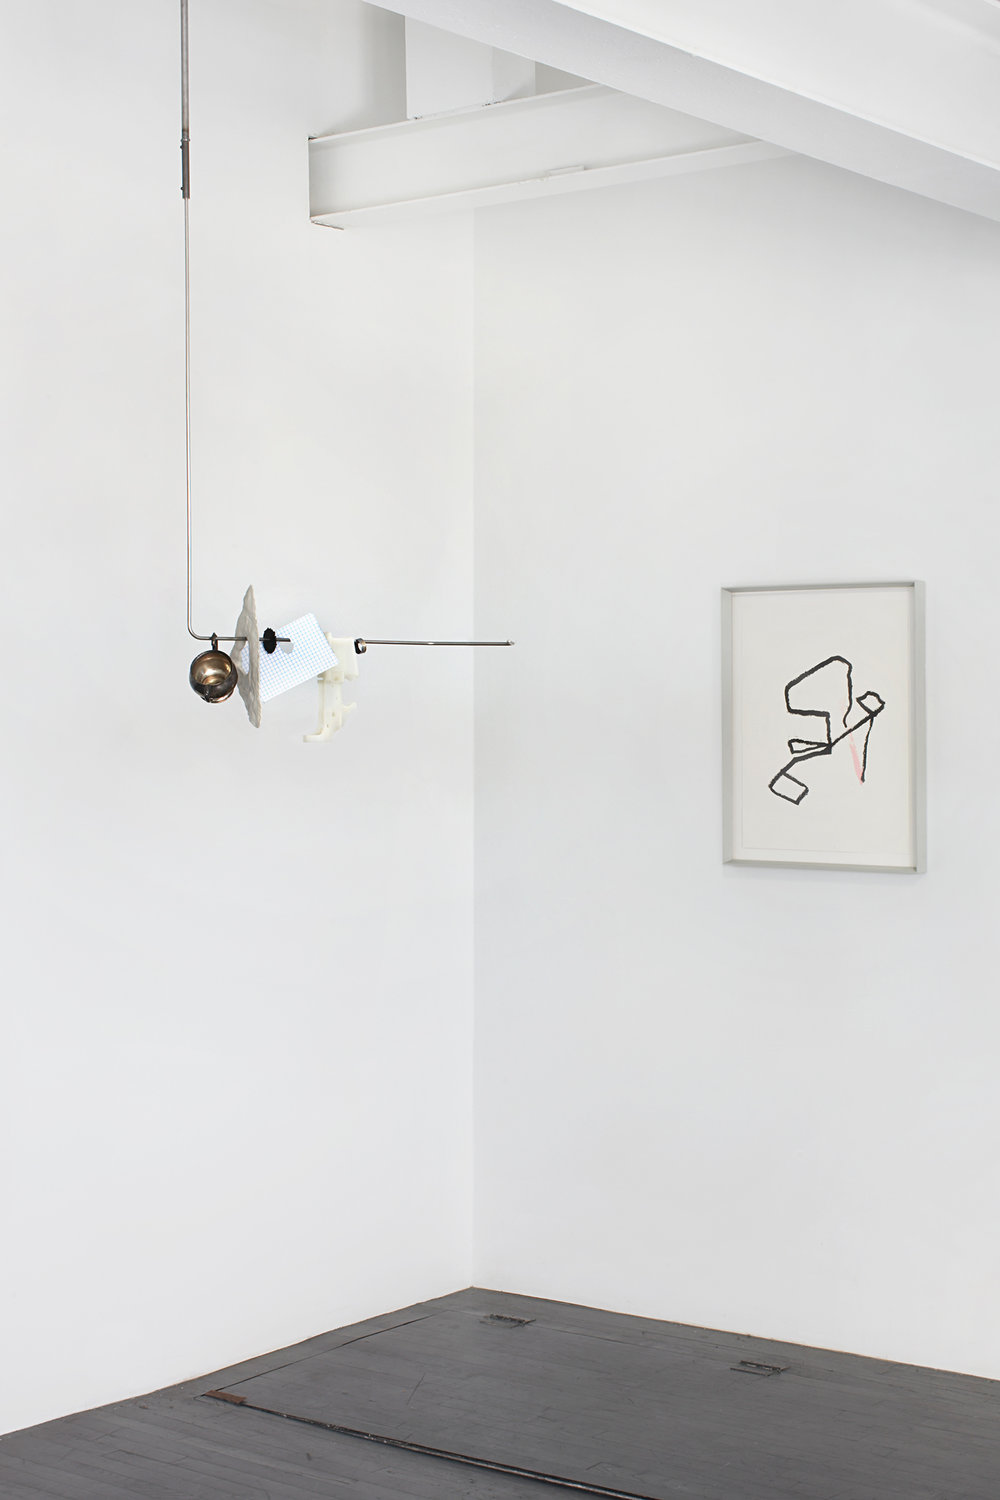 "ShiV_Rack (Left) . Installation view. Brass, plastic, paper, eyebrow hair, notecard, porcelain, sterling silver, stainless steel. 74"" x 26""x 6"". 2012."